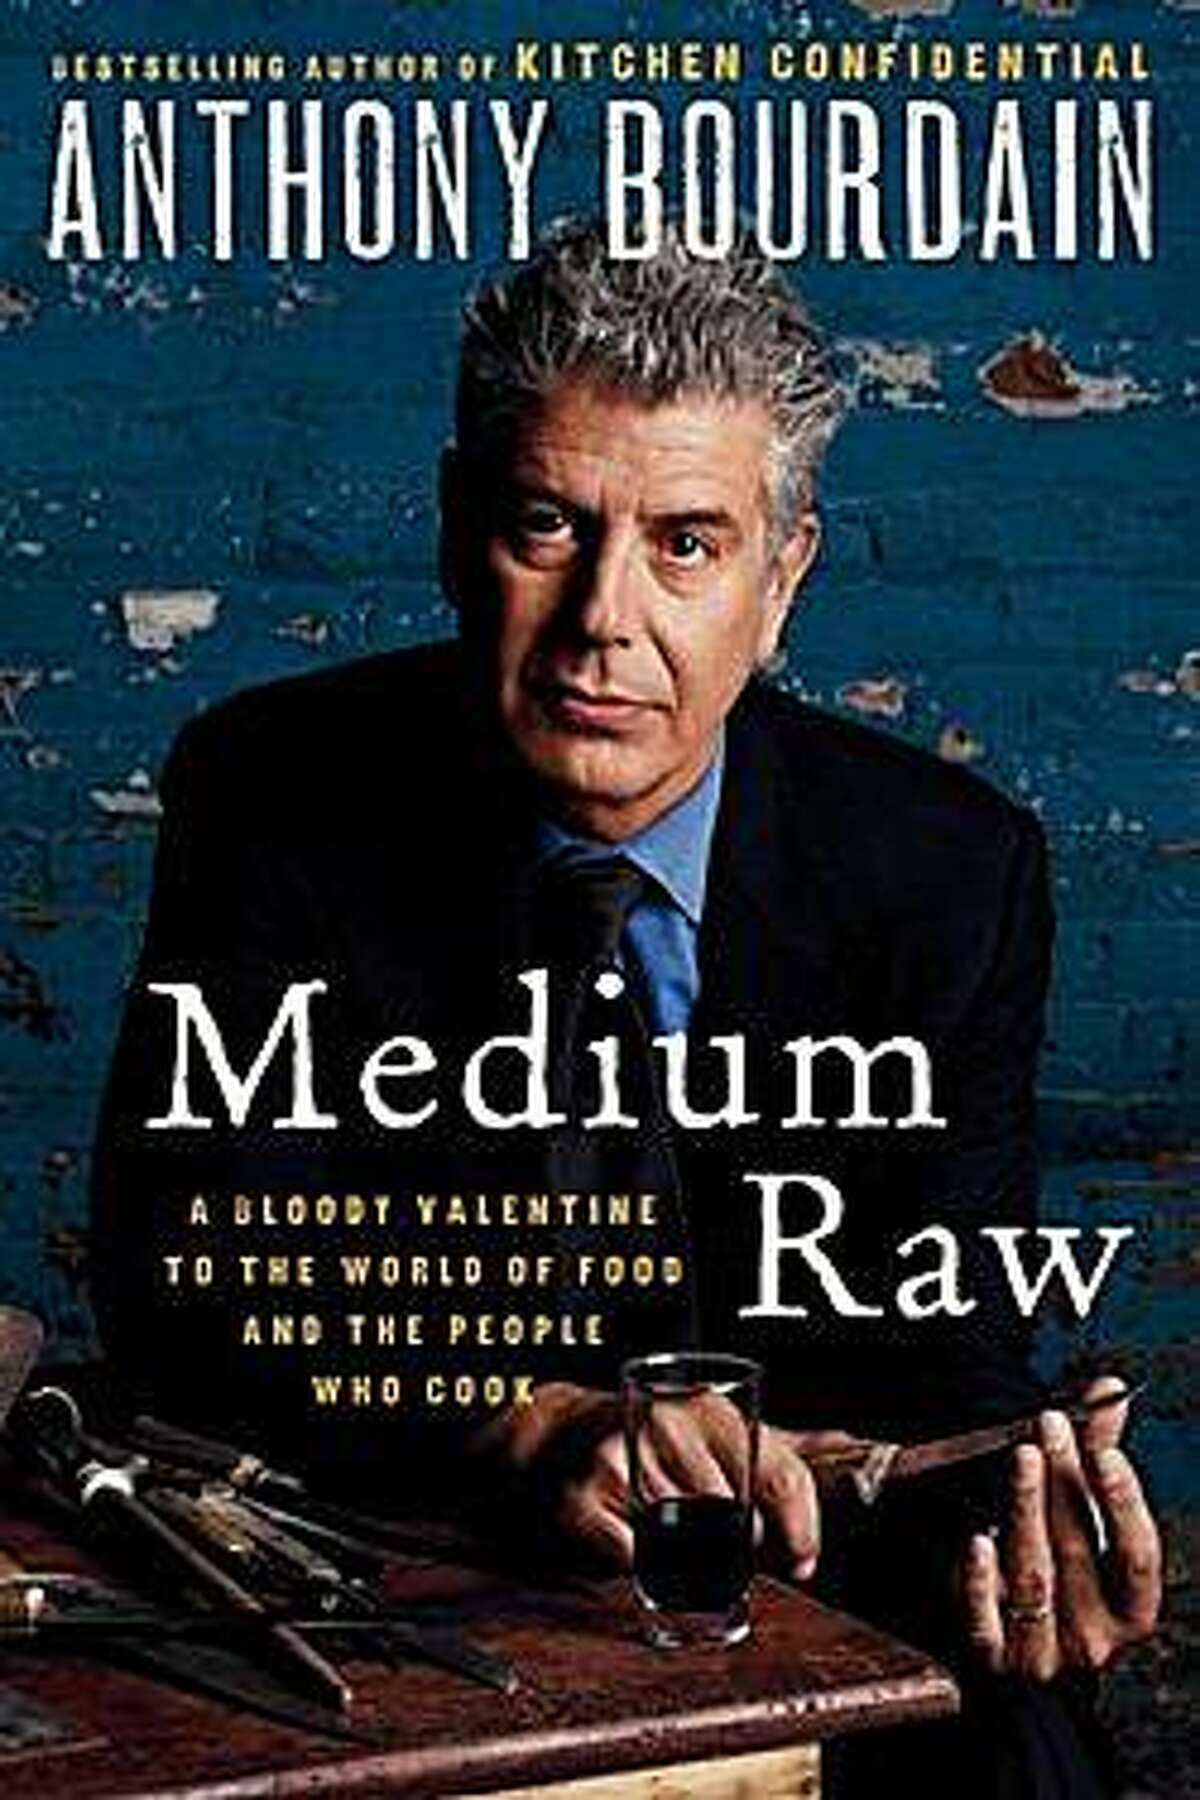 """The cover of Anthony Bourdain's new book, """"Medium Raw."""""""